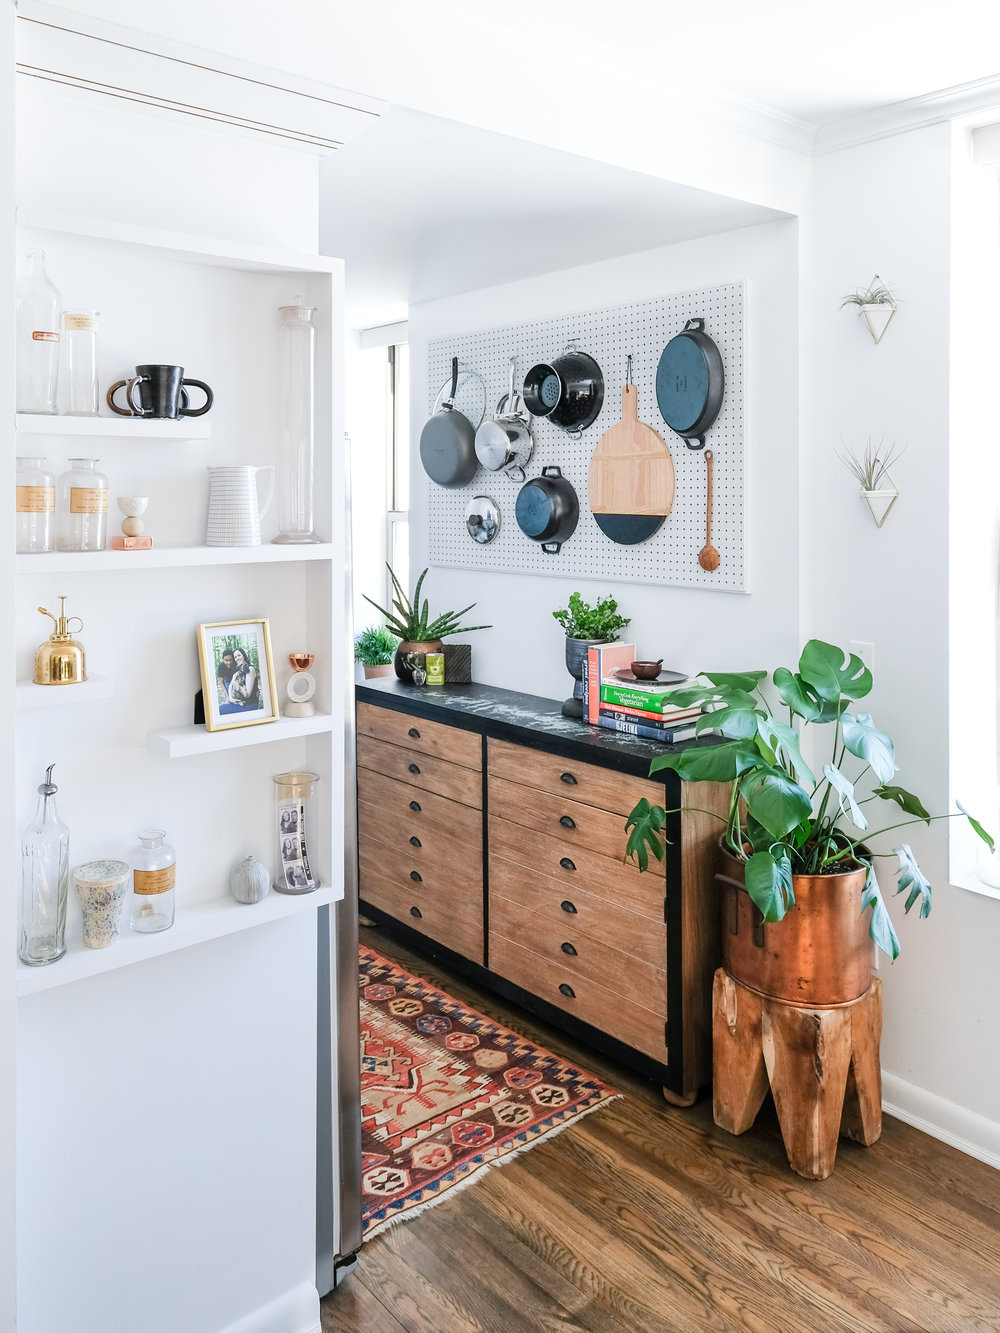 Thank You For Reading My Kitchen Renovation Story! Iu0027d Love Your Thoughts  What You Think Of The Renovation And Also Want To Hear About Your Renovation  ...